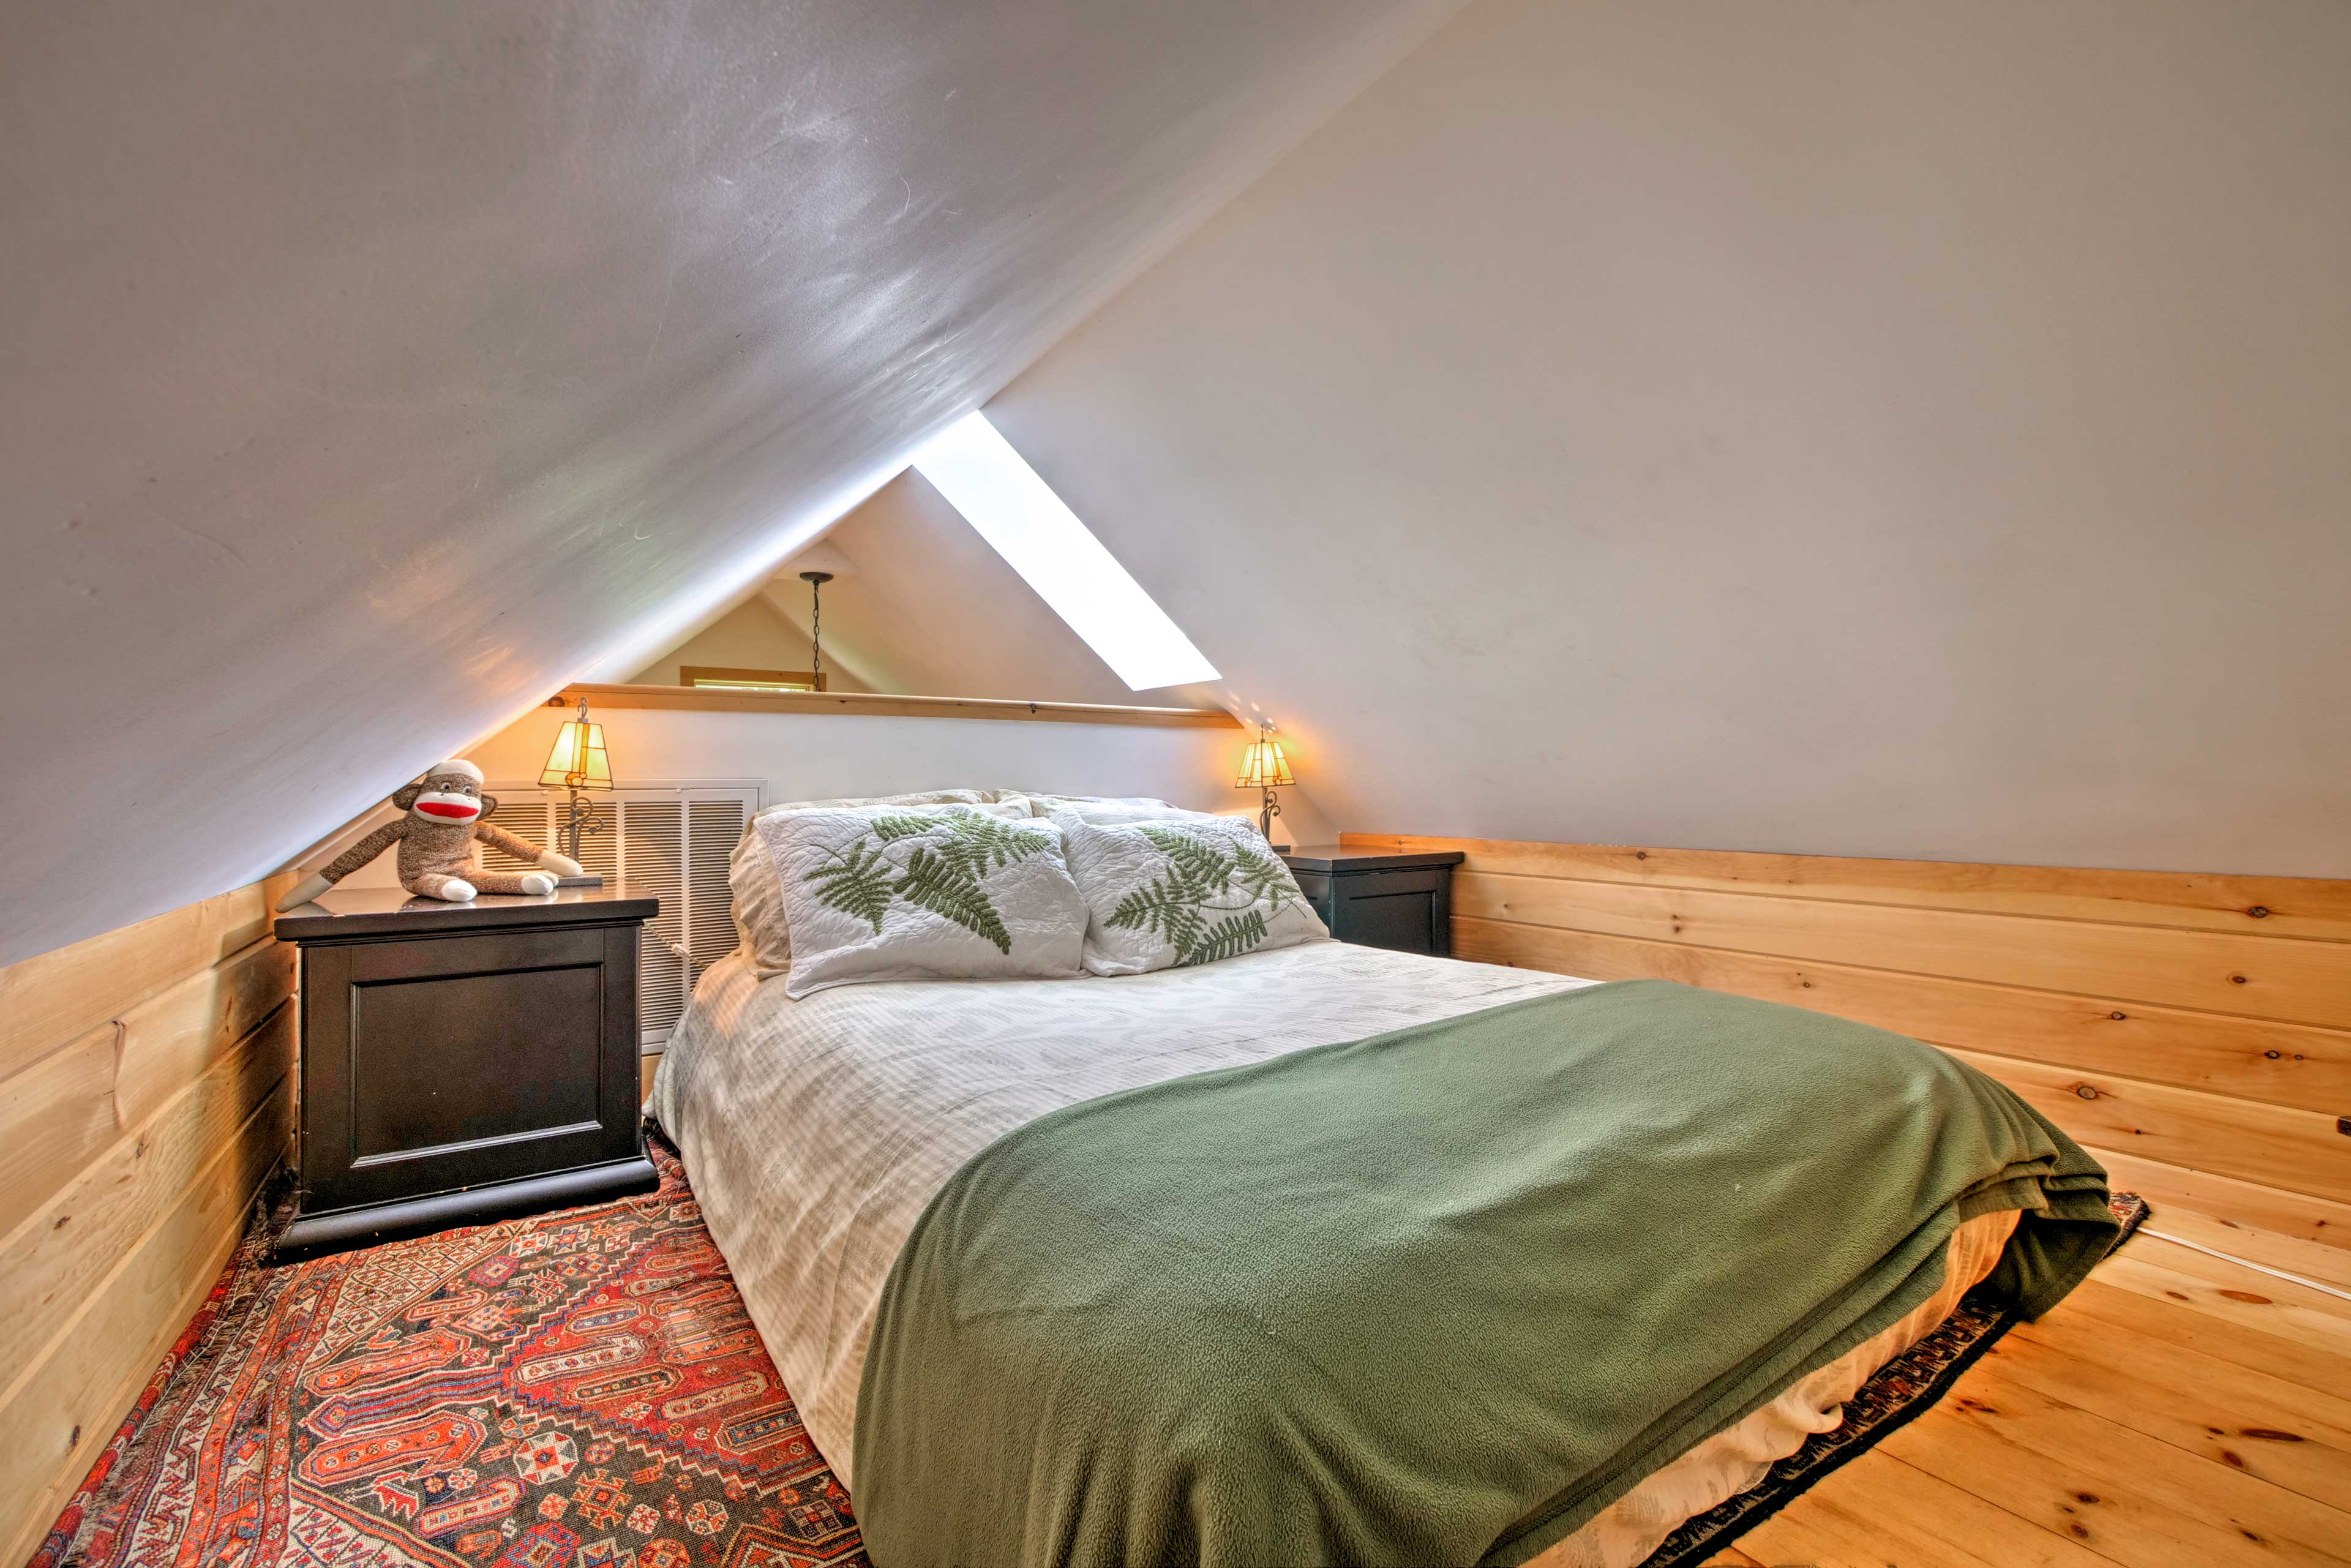 This bonus loft-bedroom is perfect for kids looking for a little adventure!